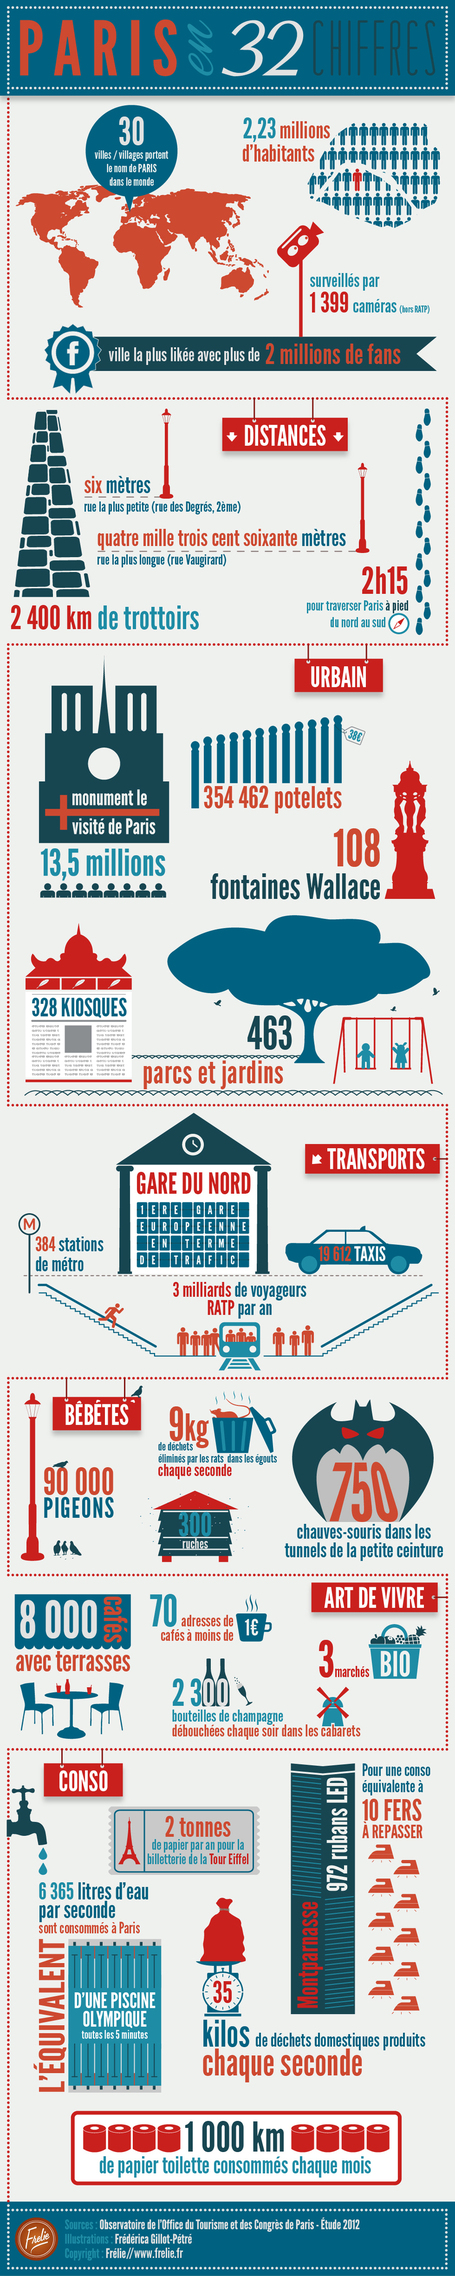 L'infographie de Paris en 32 chiffres | TICE & FLE | Scoop.it